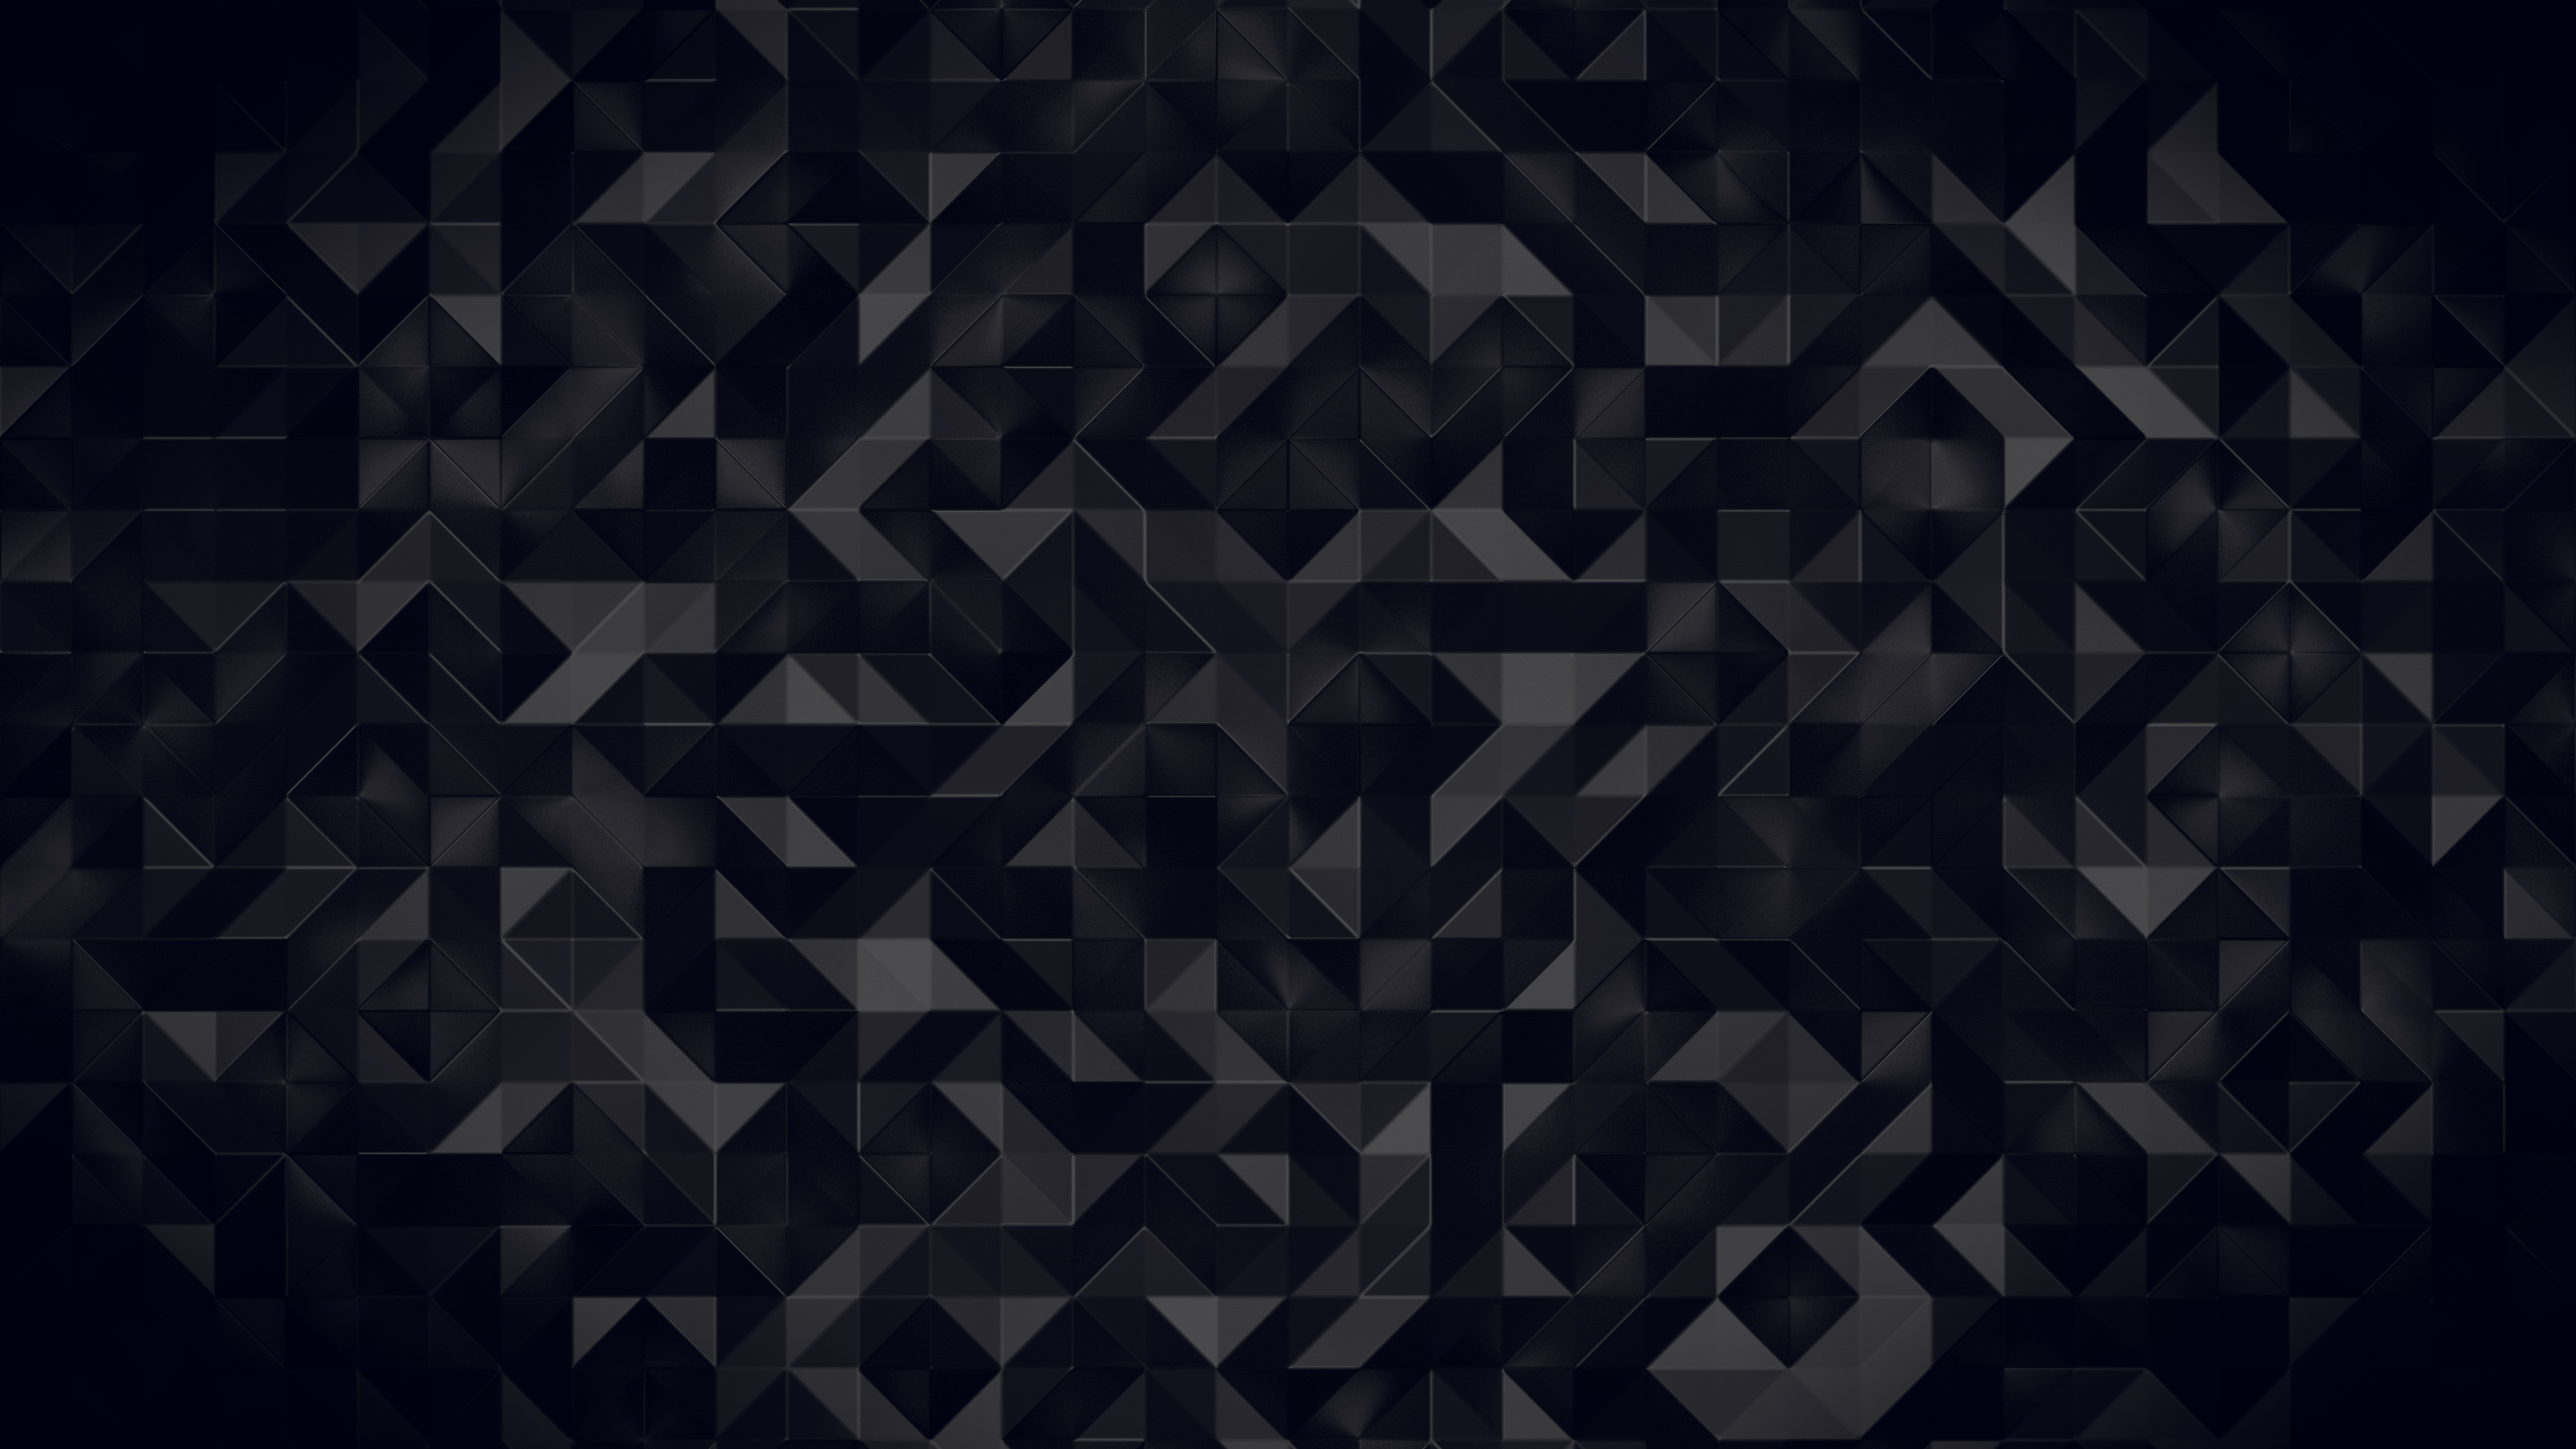 Darkness Triangles 4K Wallpapers | HD Wallpapers